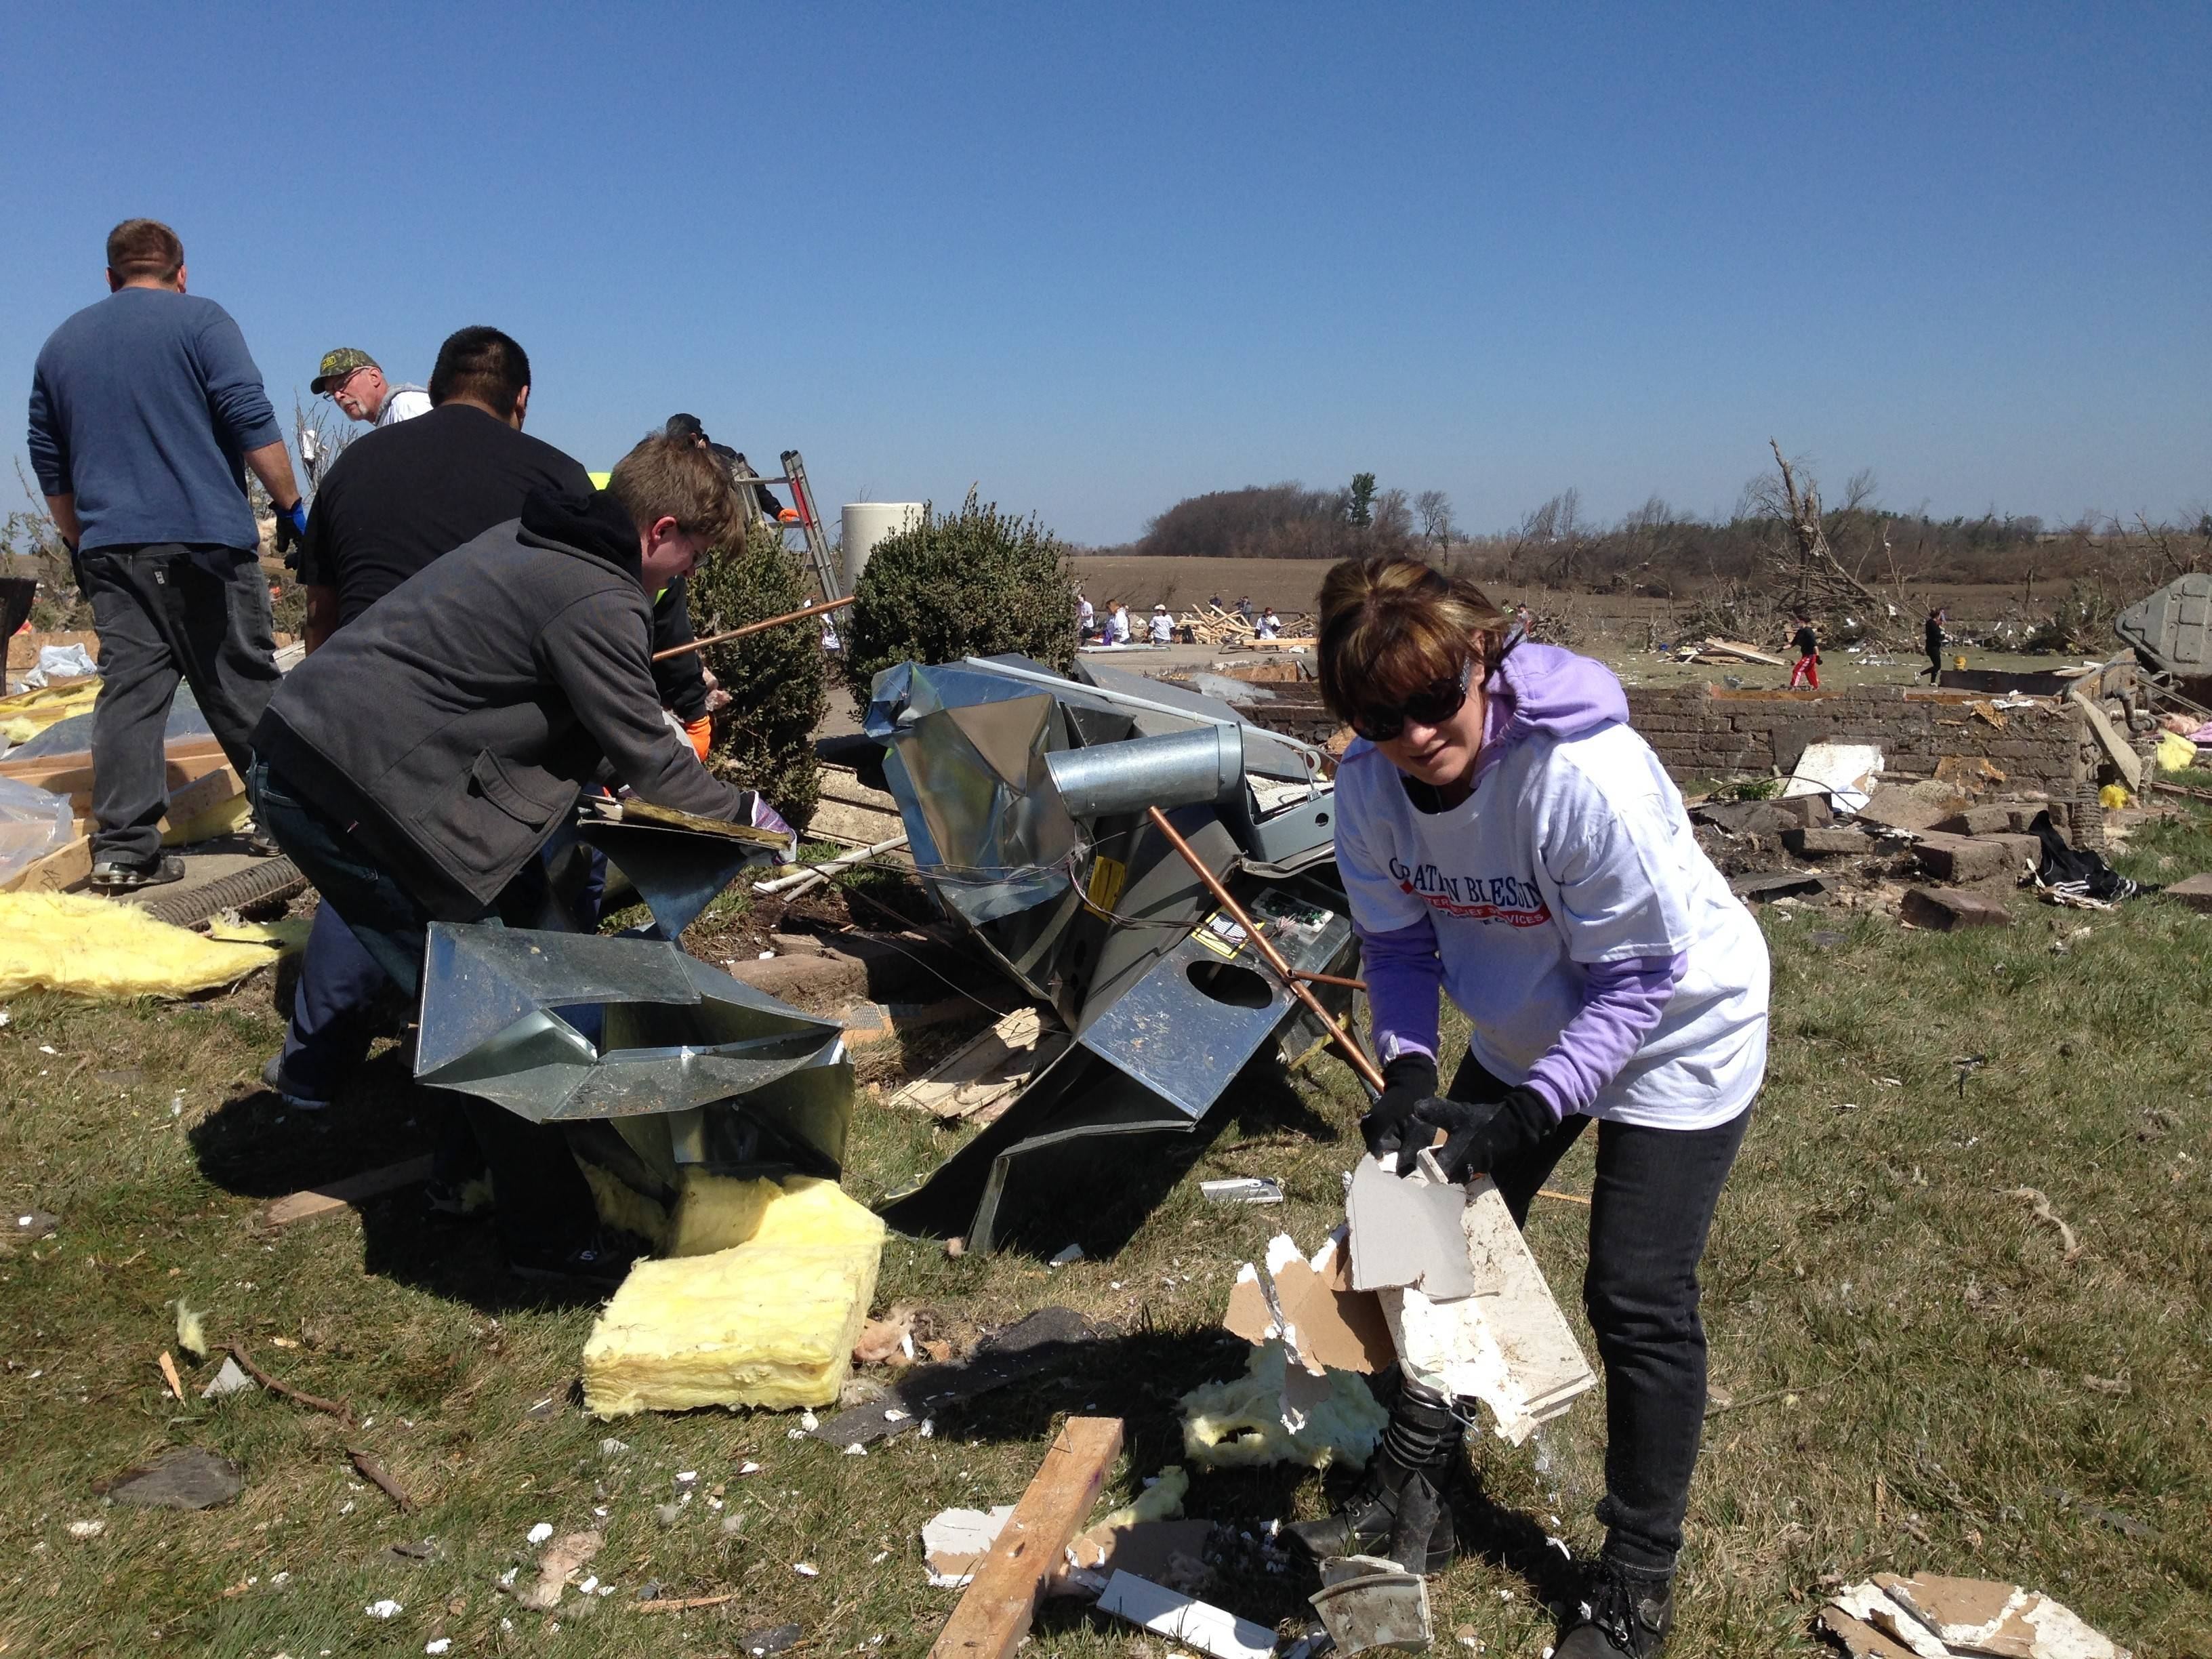 Volunteers assist in the cleanup of the tornado-destroyed home of Mike Price in Rochelle Saturday morning. Operation Blessing was one of many faith-based organizations that put out an open call for volunteers to help in the aftermath of Thursday's tornado that also hit the nearby town of Fairdale.